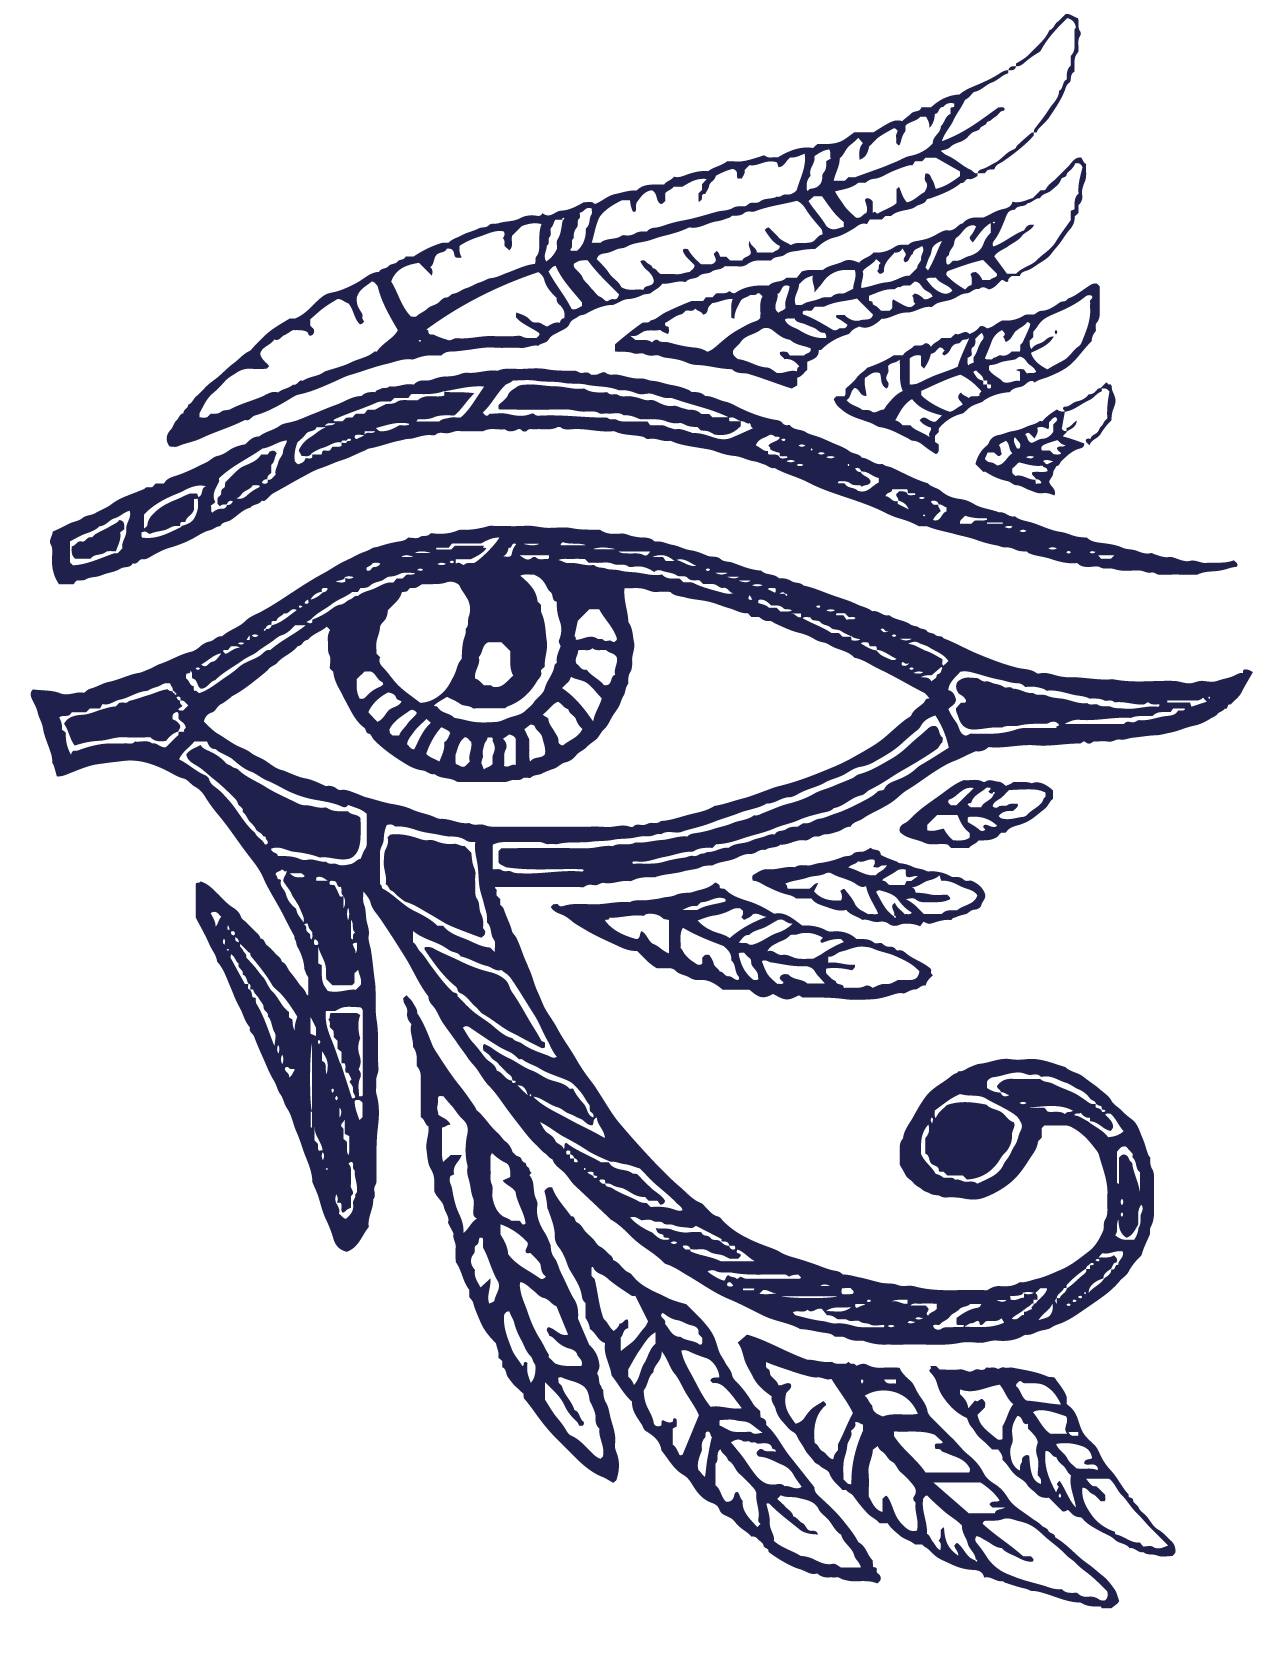 The Eye of Horus (The Egyptian Eye) and Its Meaning